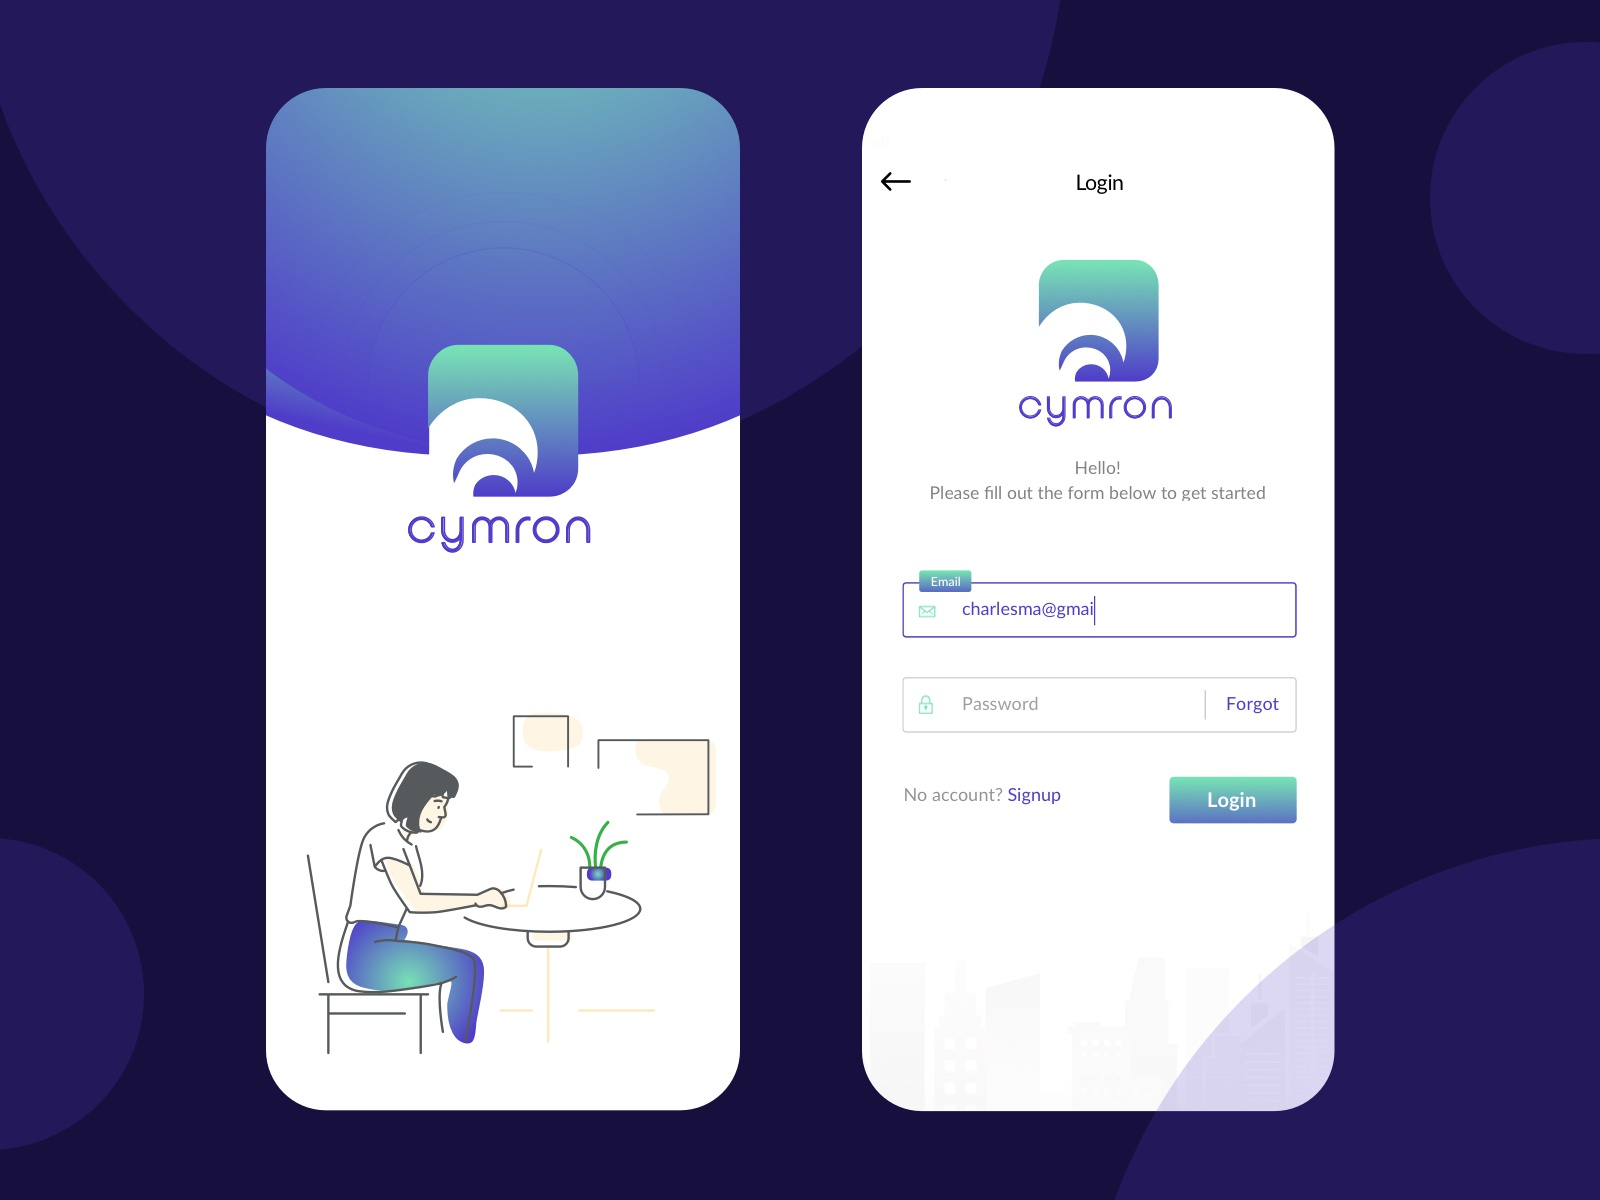 Cymron Job Portal App Splash Login Screen Design By Wve Labs On Dribbble,Simple Ceiling Design For Bedroom